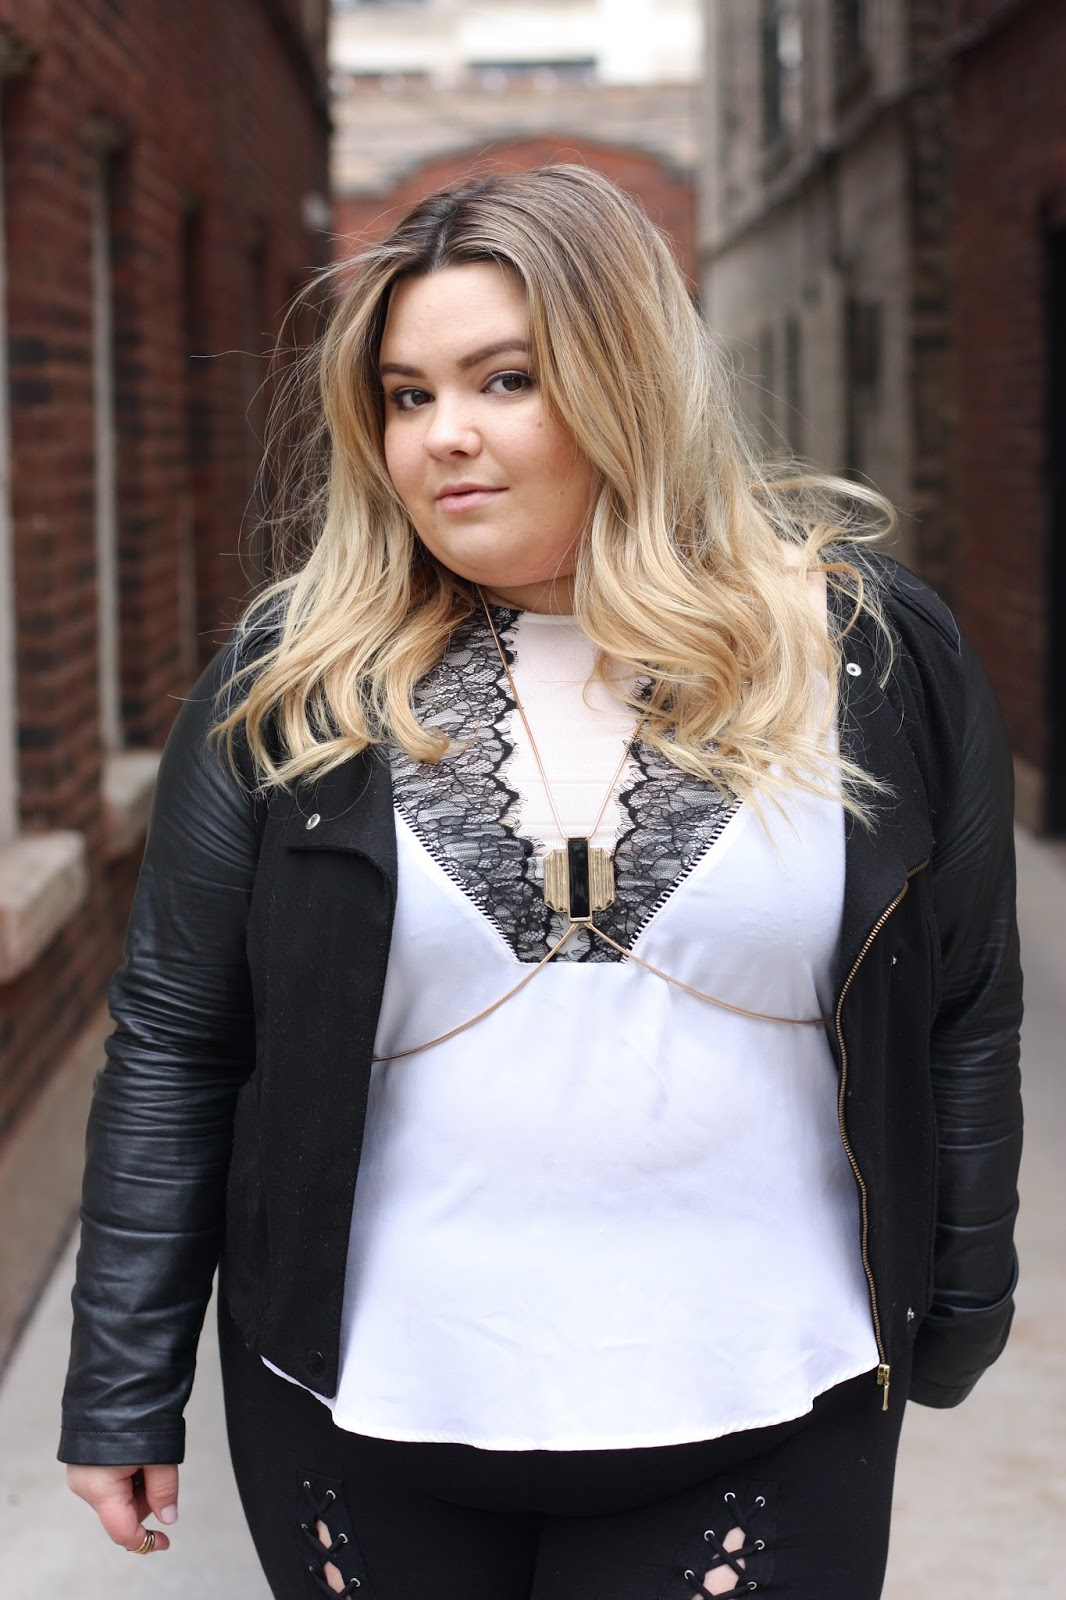 plus size lace up leggings, khloe kardashian lace up leggings, criss cross leggings, plus size fashion, plus size fashion blogger, natalie craig, natalie in the city, fashion, chicago blogger, midwest blogger, forever 21 plus